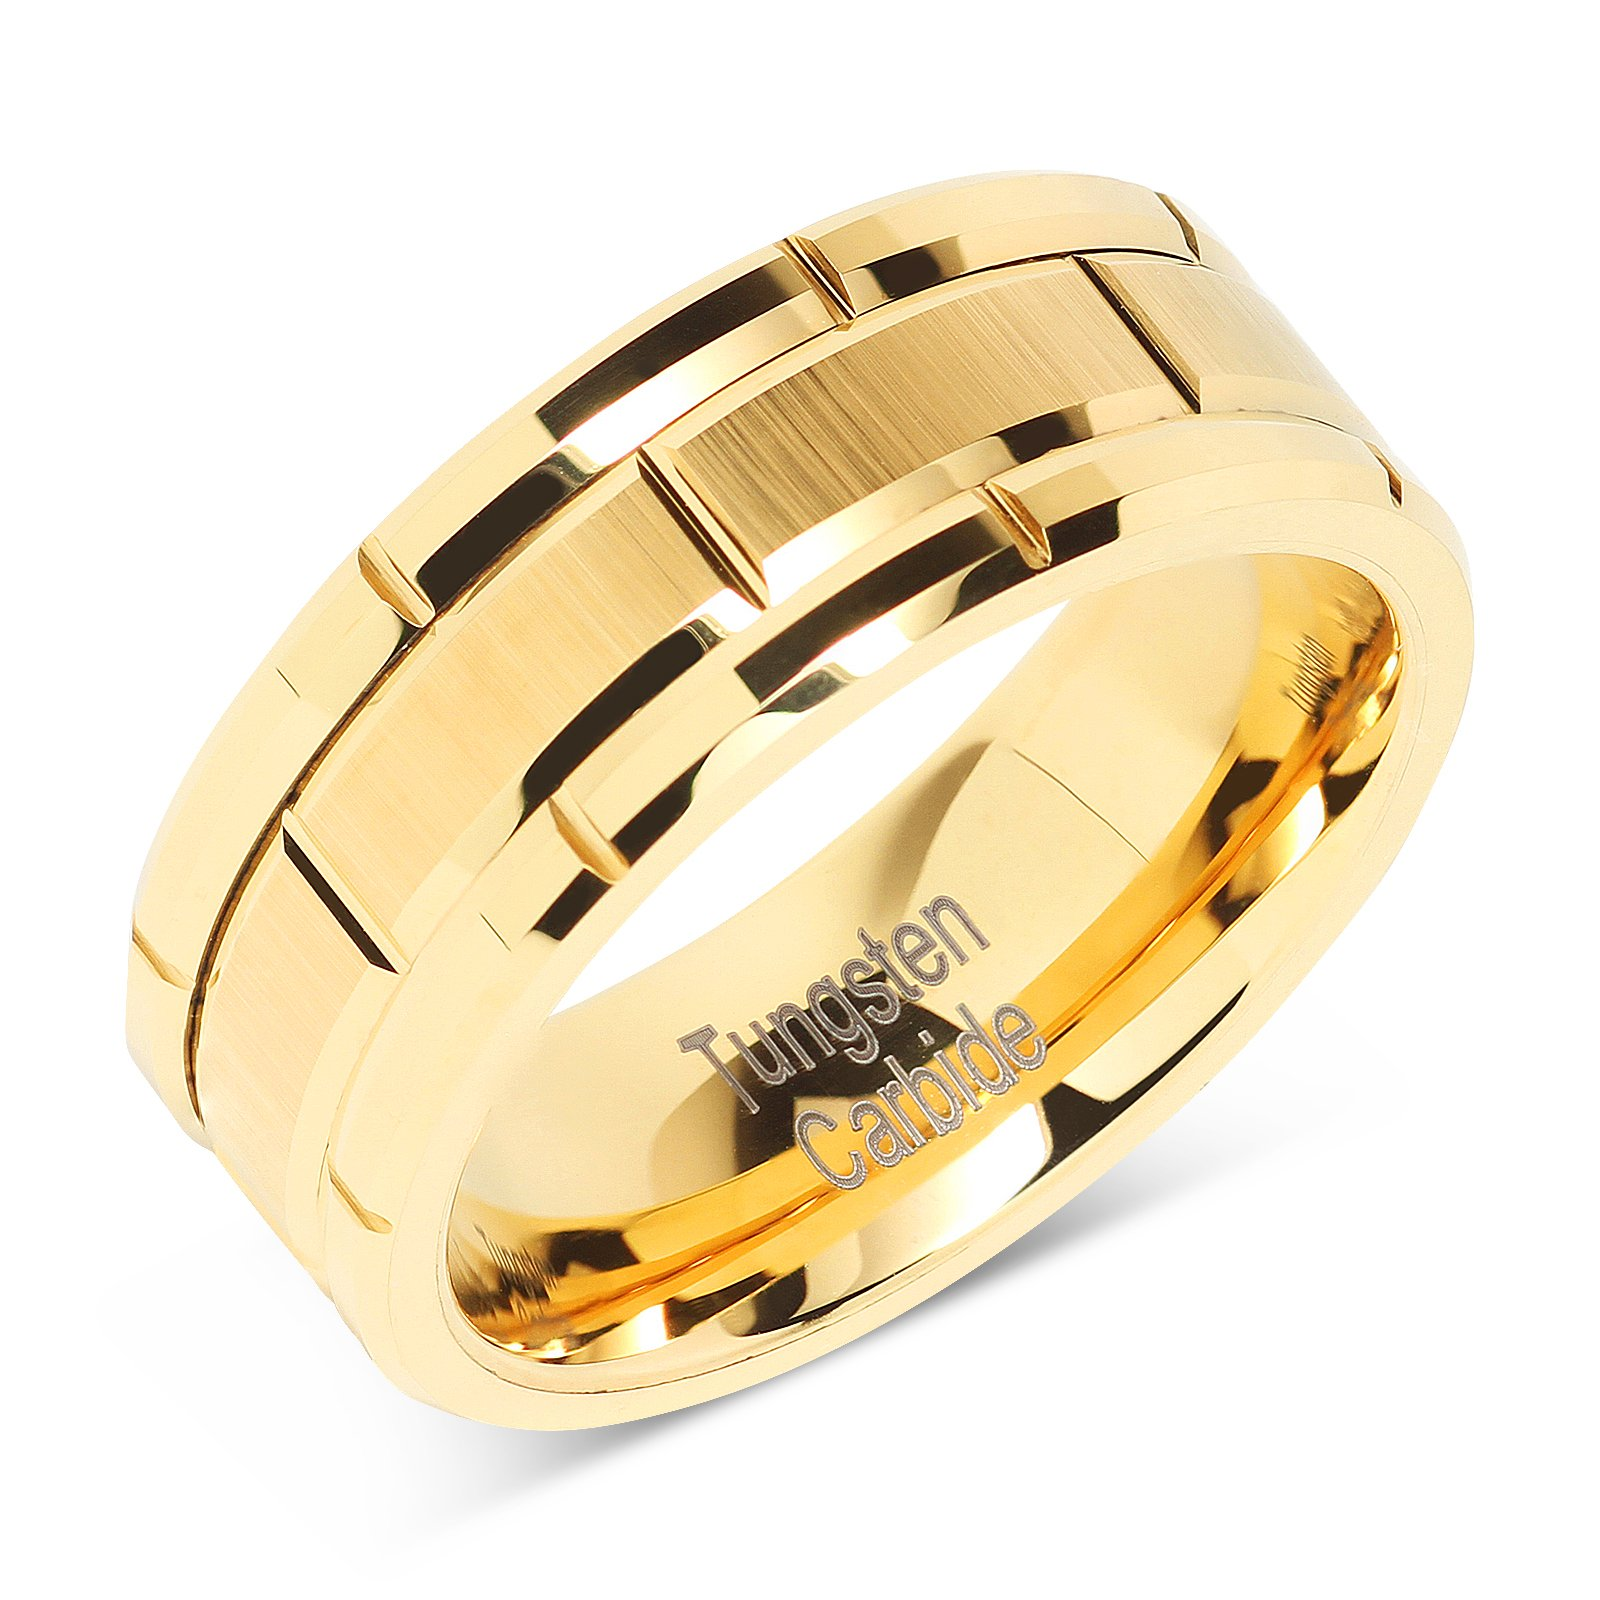 100S JEWELRY Tungsten Ring for Men Wedding Band Gold Brick Pattern Brushed Beveled Edge Size 6-16 (10) by 100S JEWELRY